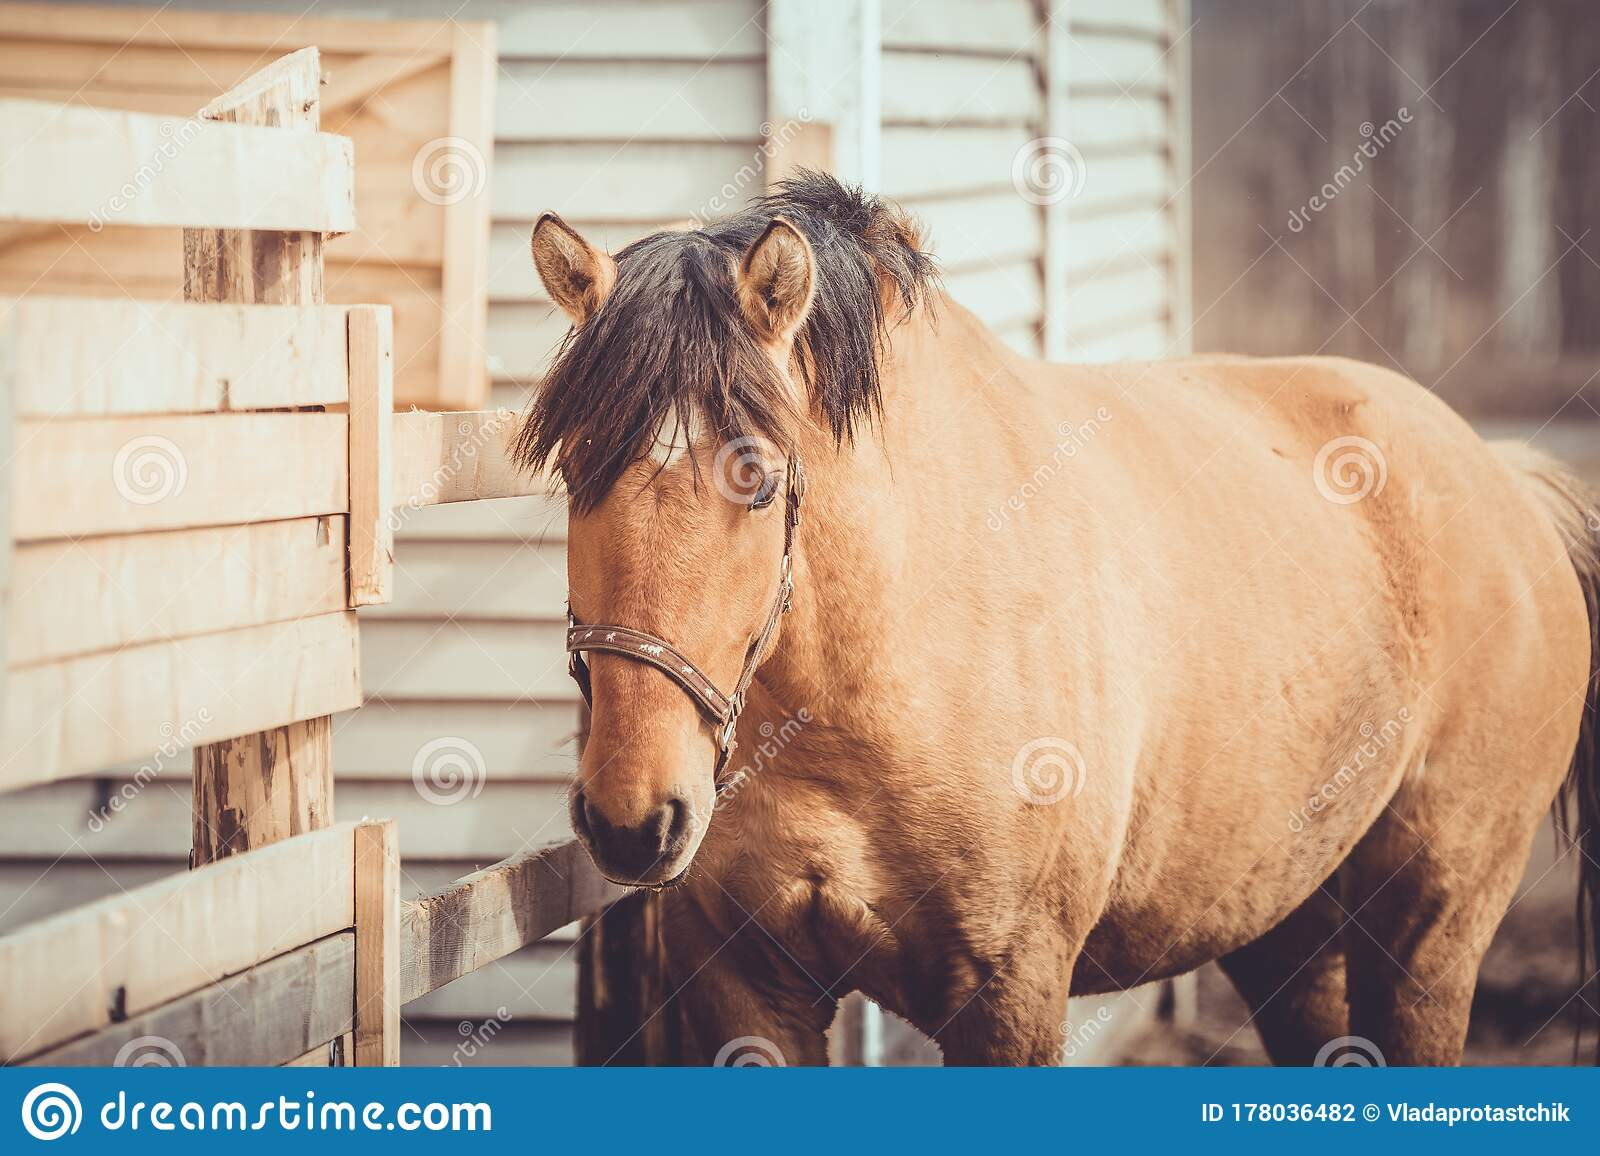 Young Buckskin Draft Horse In Halter On Paddock In Daytime Stock Photo Image Of Horse Mammal 178036482